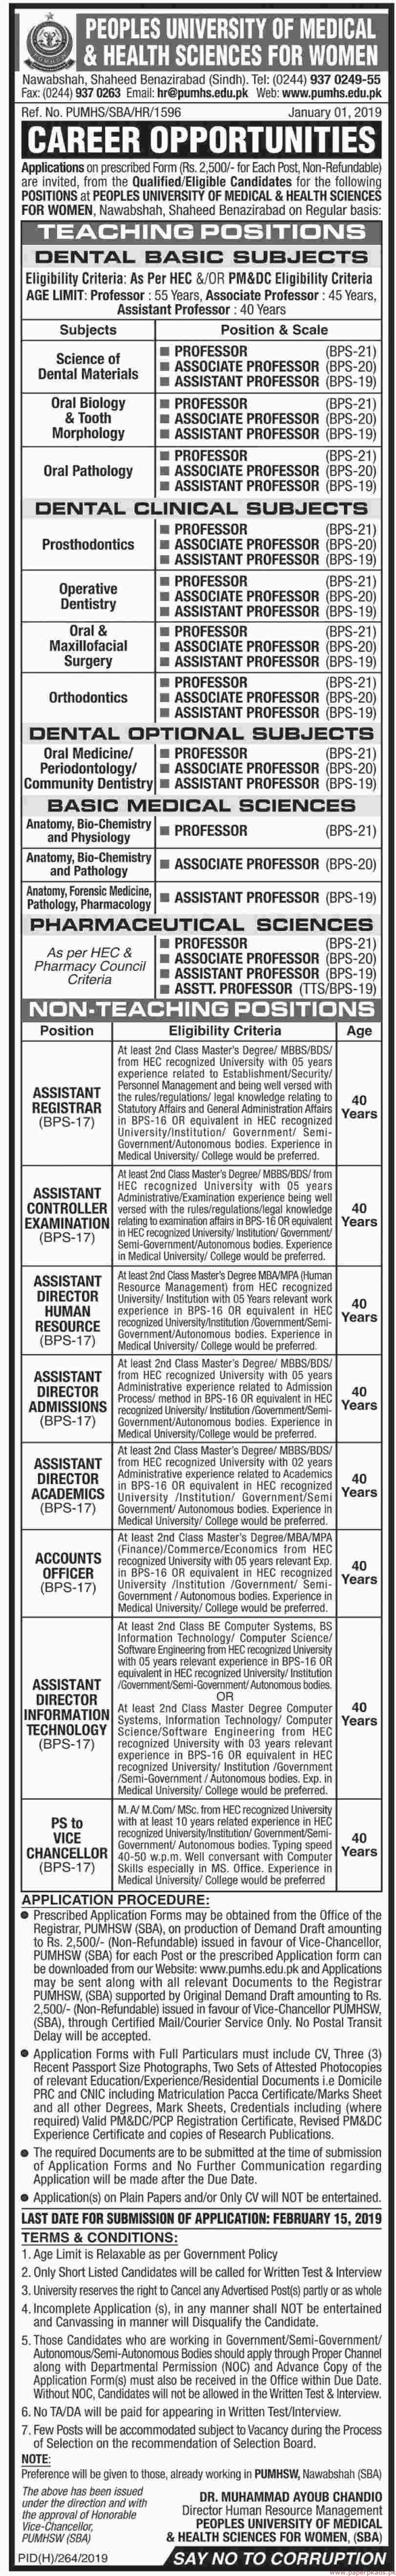 Peoples University of Medical & Health Sciences Jobs 2019 Latest